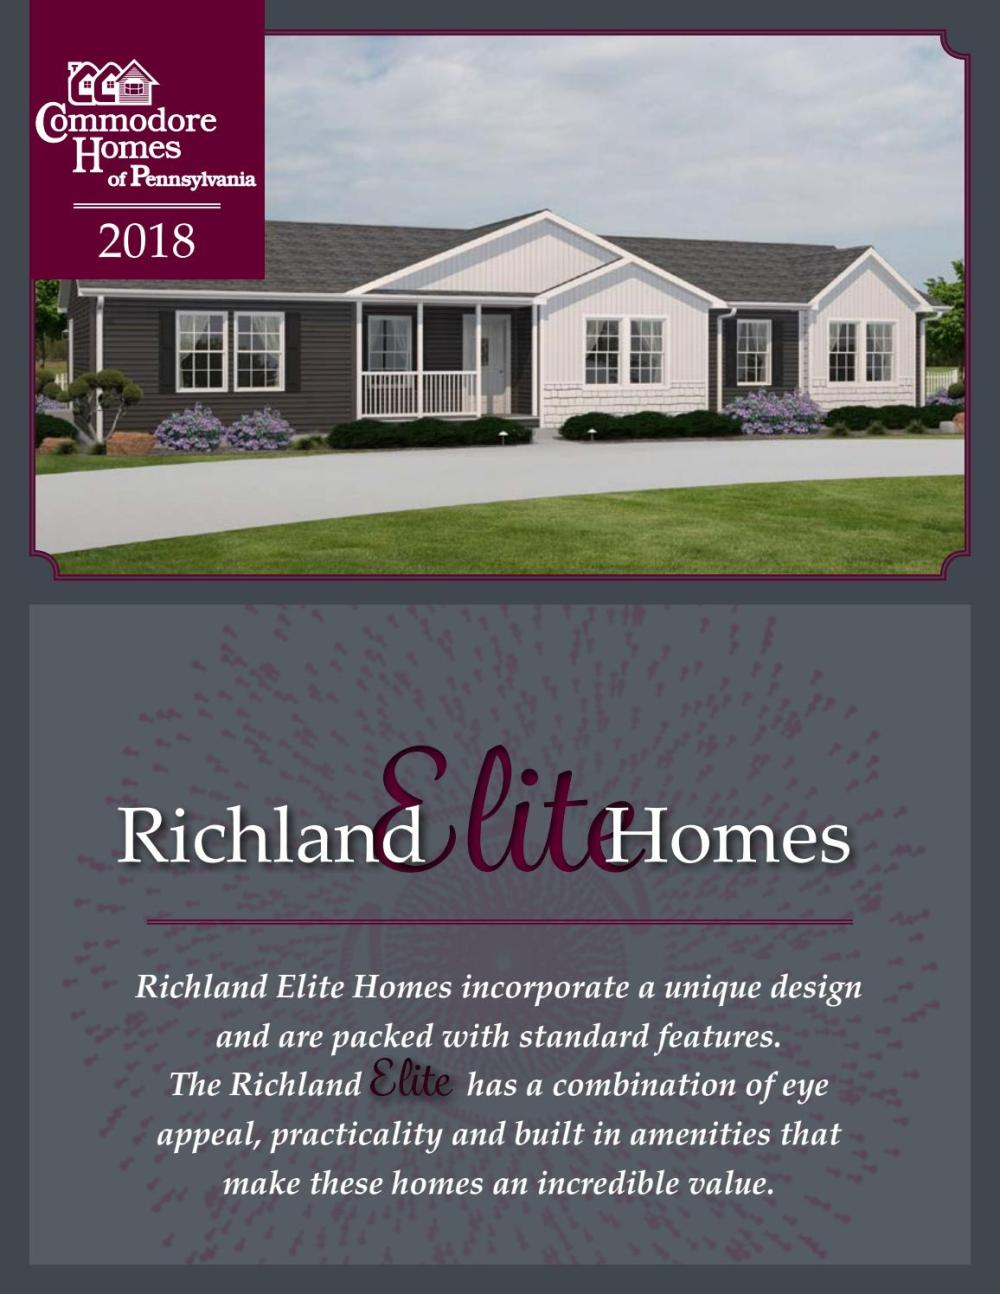 medium resolution of commodore homes of pennsylvania richland elite 2018 by the commodore corporation issuu